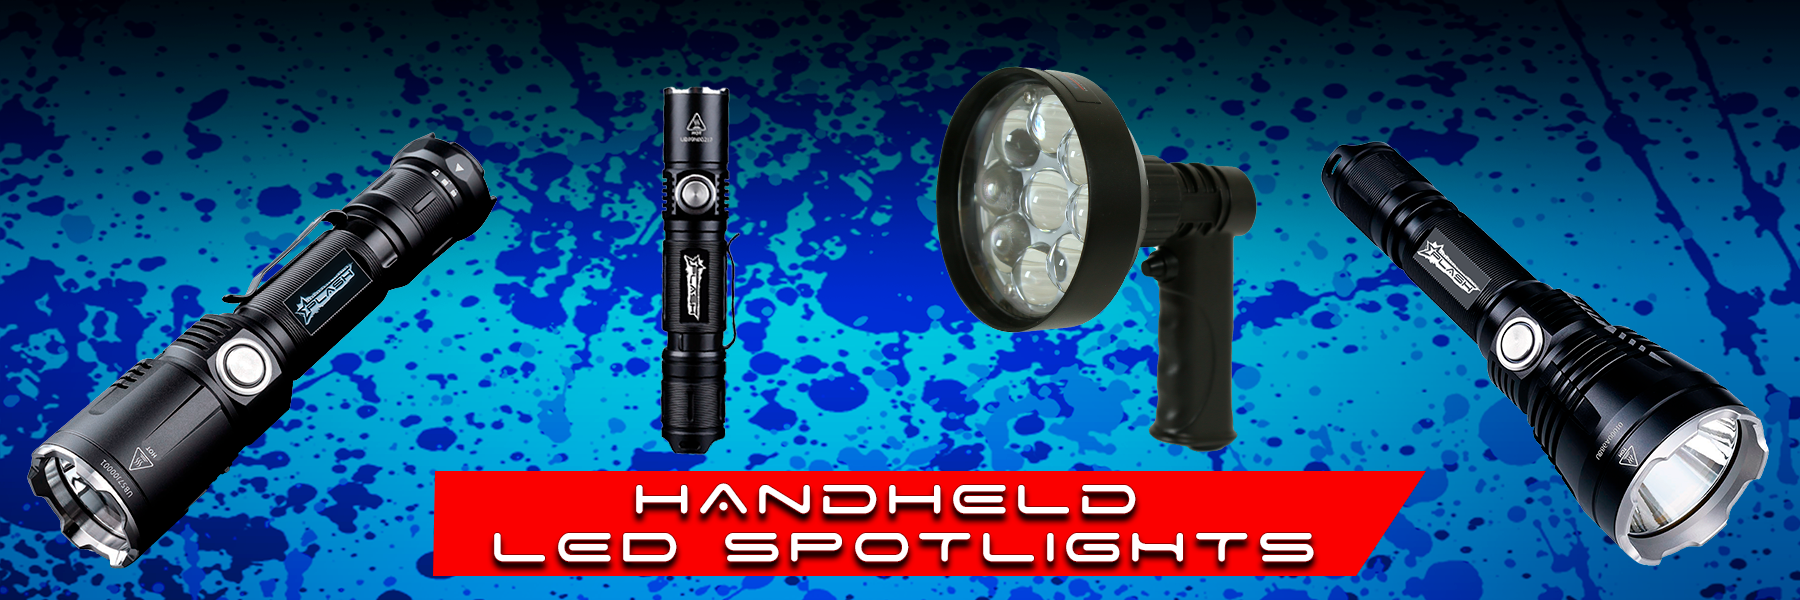 HANDHELD LED SPOTLIGHTS